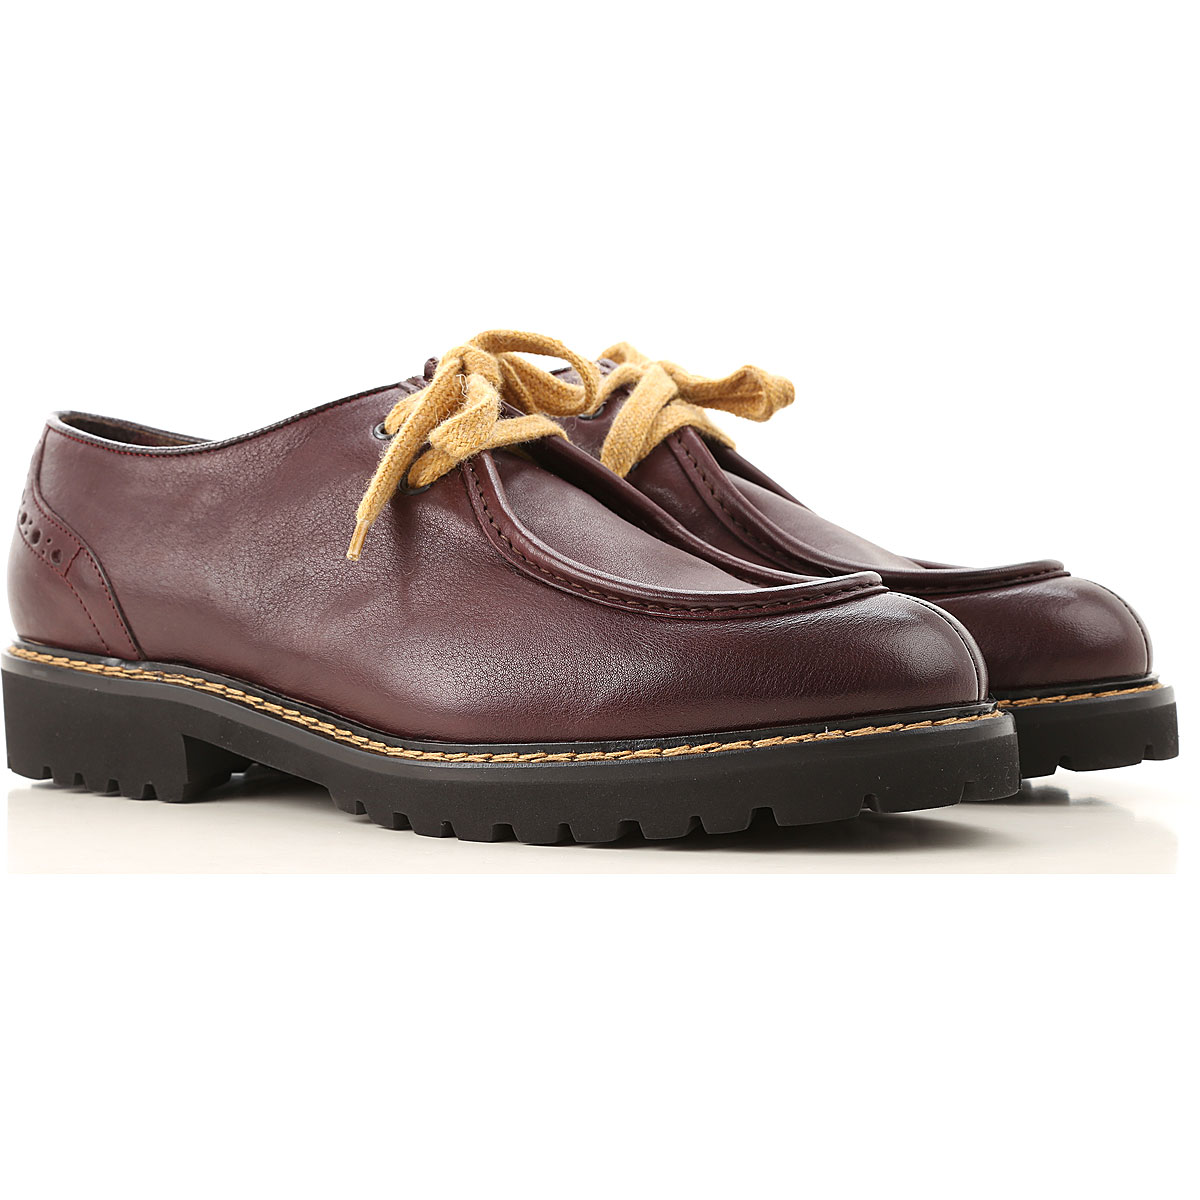 Doucals Lace Up Shoes for Men Oxfords, Derbies and Brogues On Sale, Burgundy, Leather, 2019, 10.5 7.5